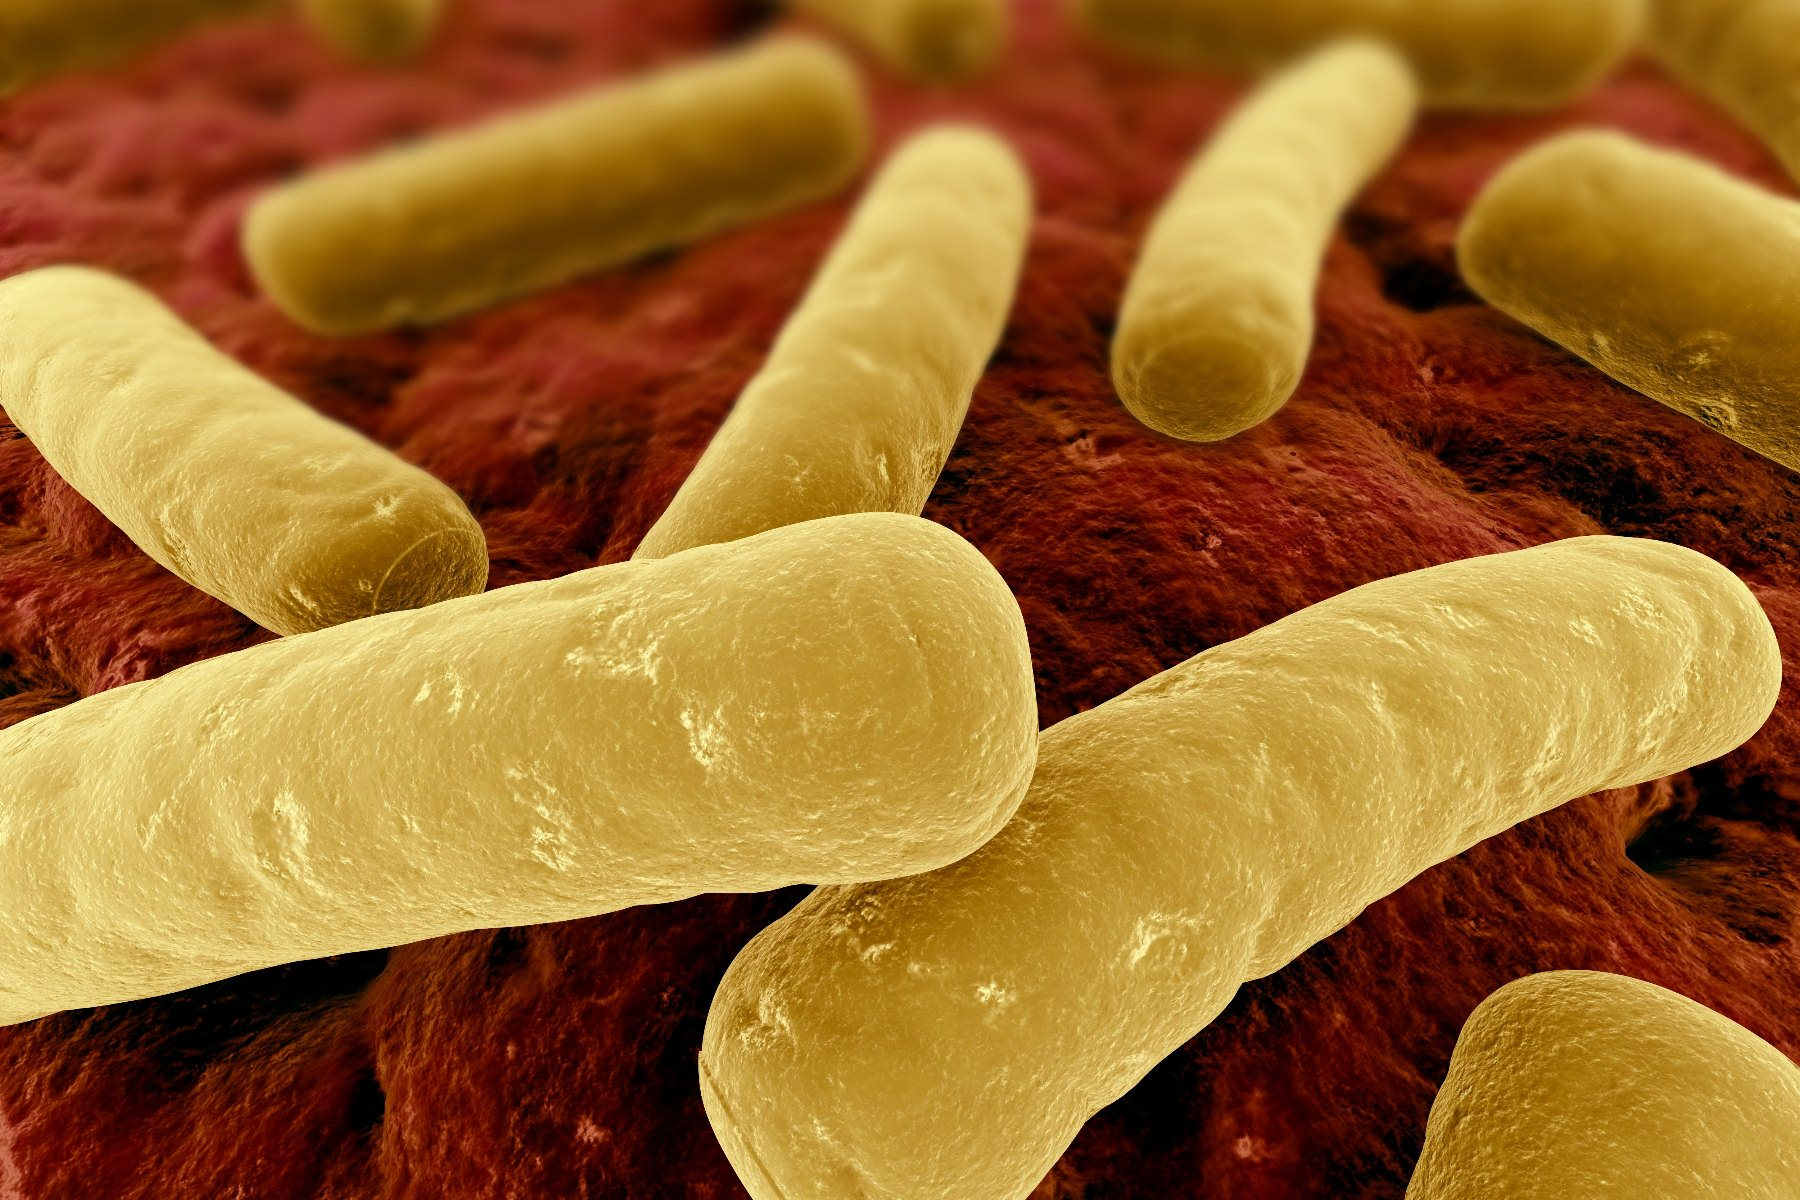 Clostridium difficile control and disinfection